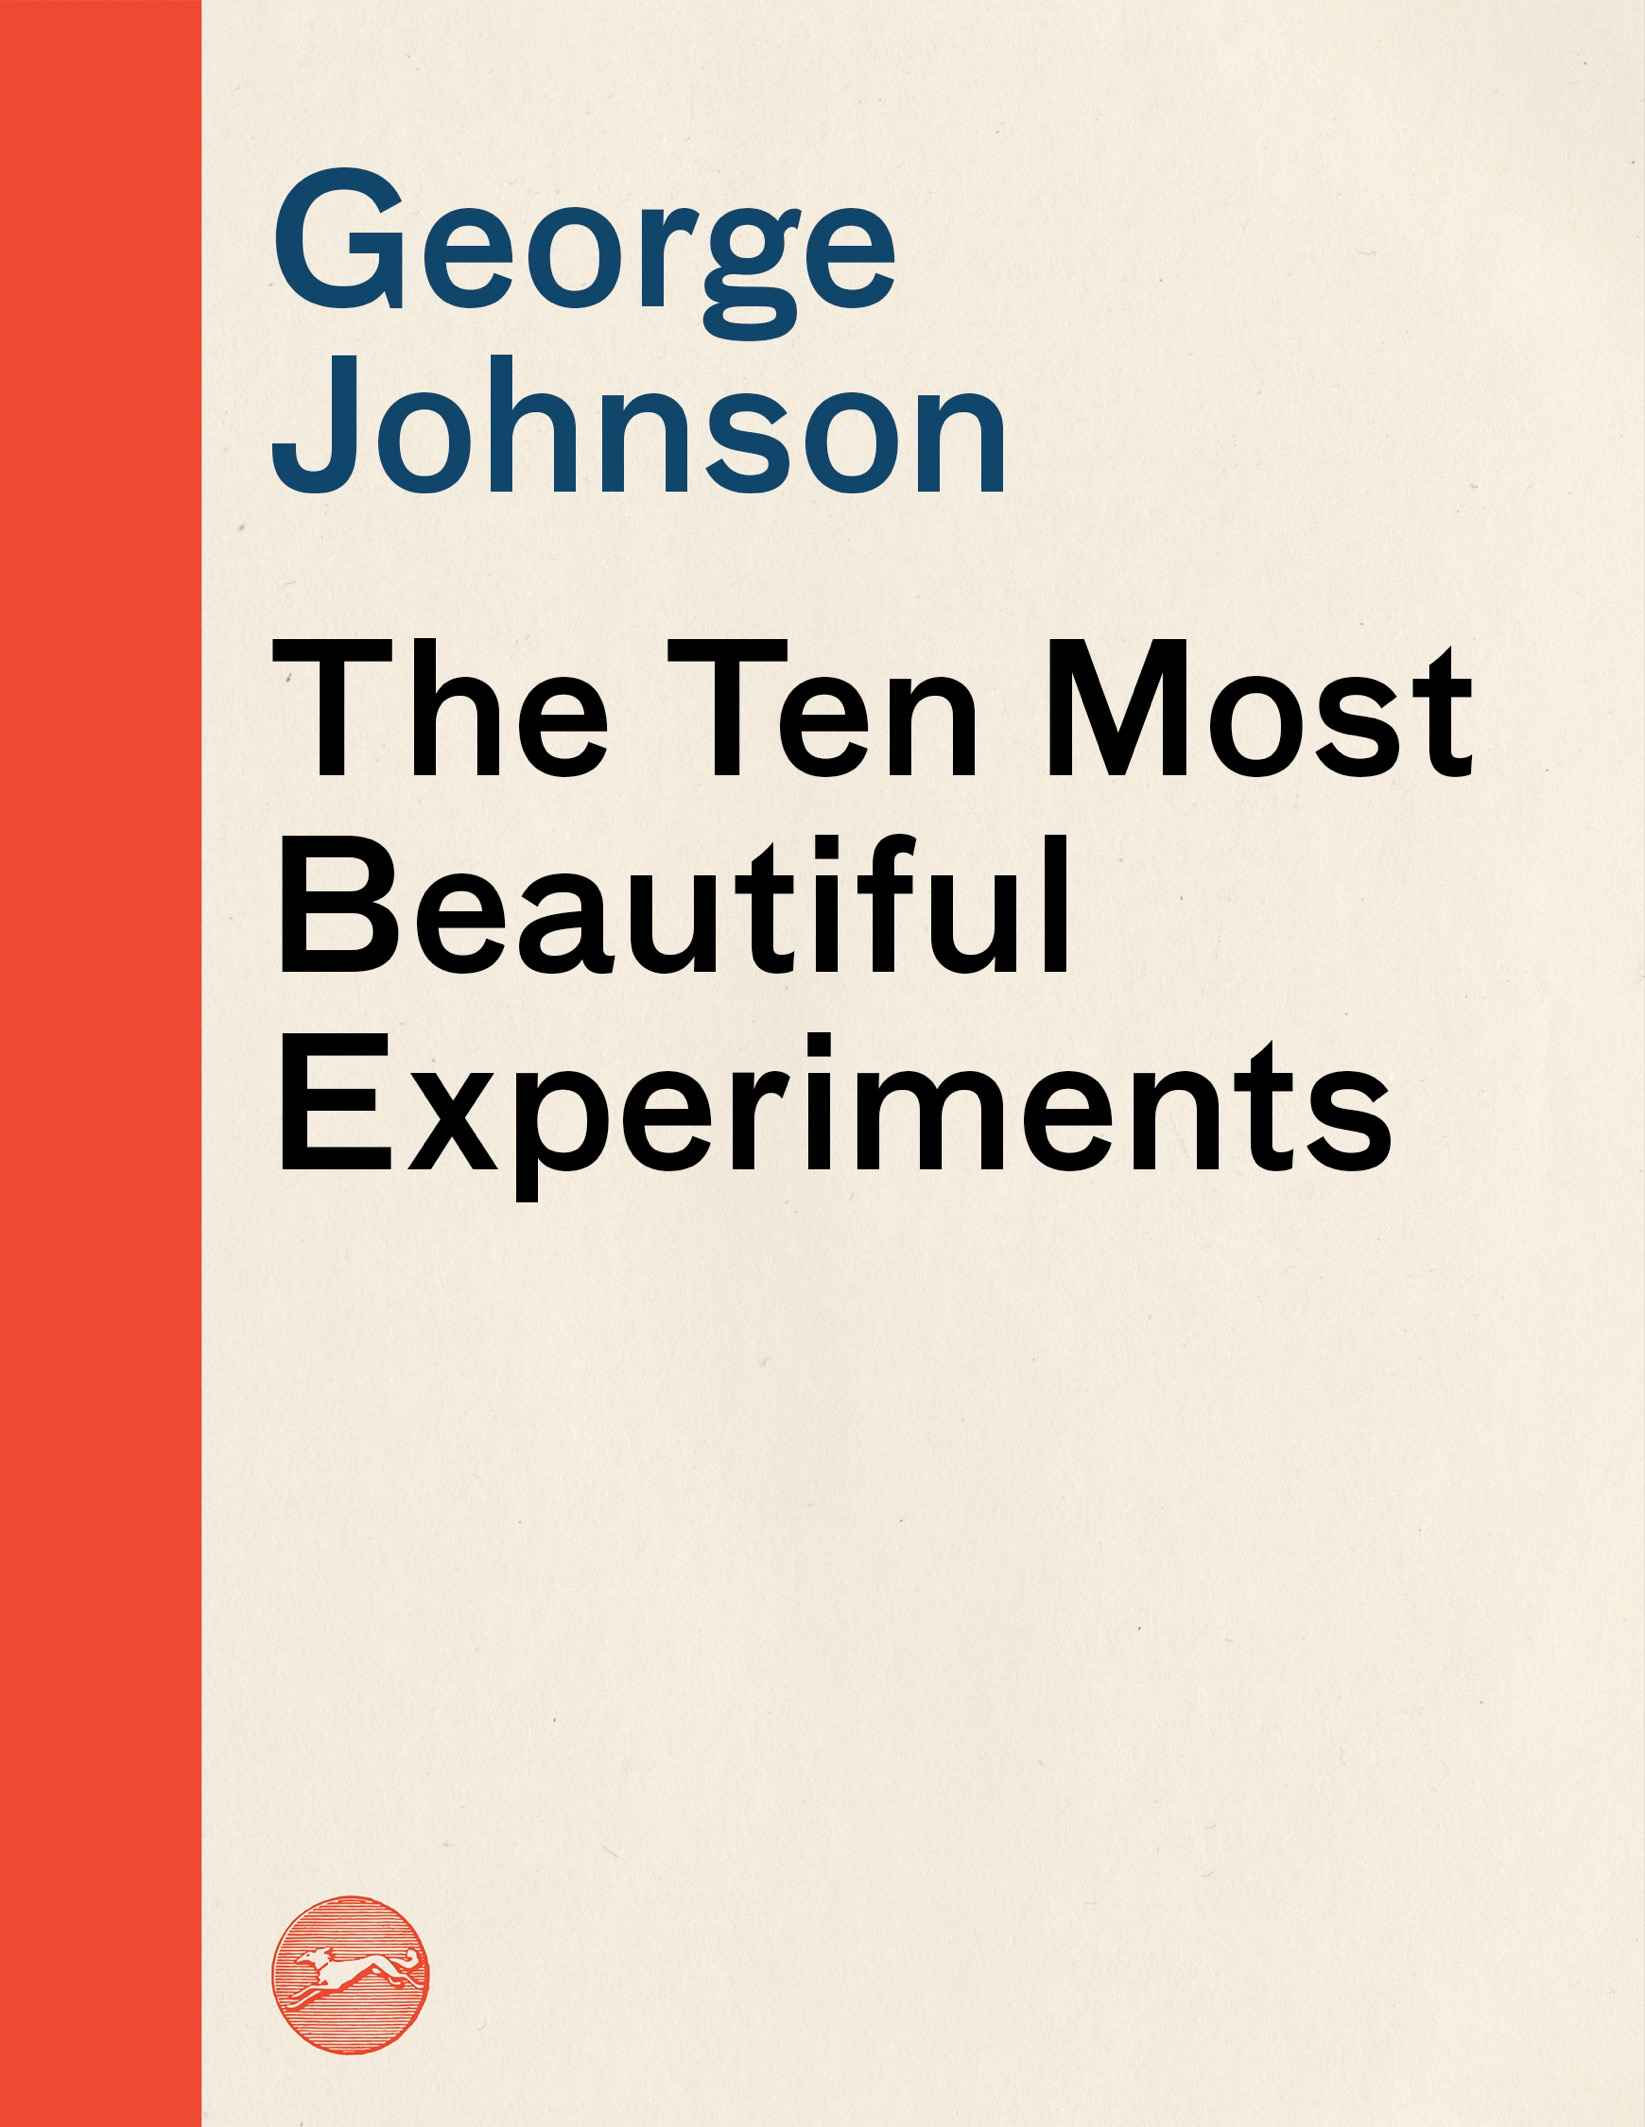 The cover of The Ten Most Beautiful Experiments